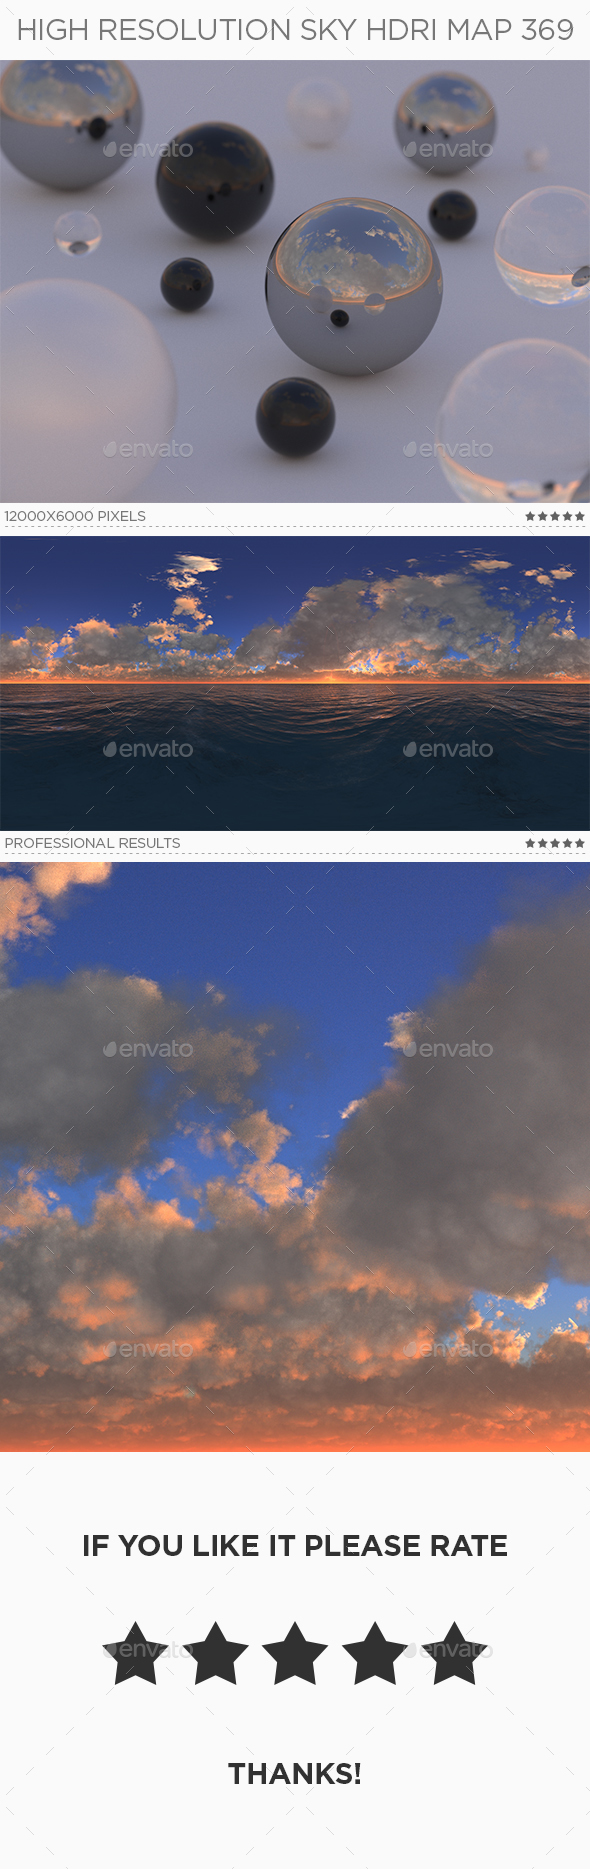 High Resolution Sky HDRi Map 369 - 3DOcean Item for Sale